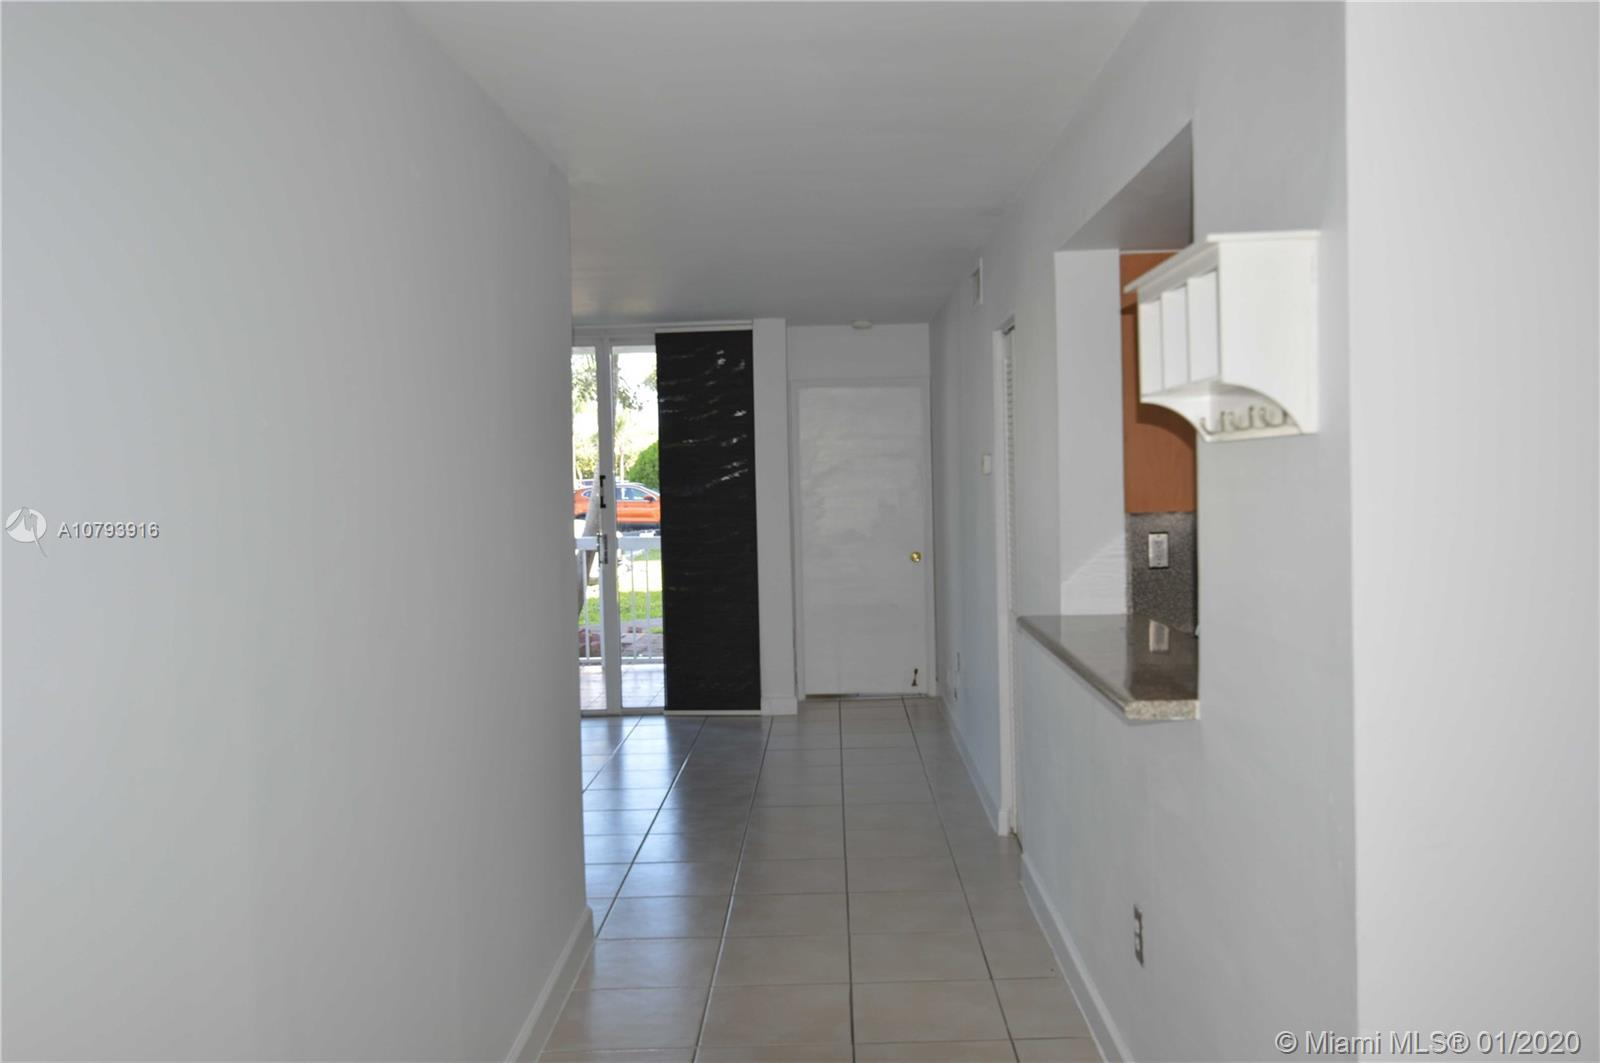 Beautiful condo, Great location, Spacious, ceramic floors, fully renovate, plus room (Den) could be a second bedroom, community has all services . Close to I-75, 836, Palmetto, Shopping centers, restaurants, parks, Dolphin Mall e International Mall.Ask for a showing.